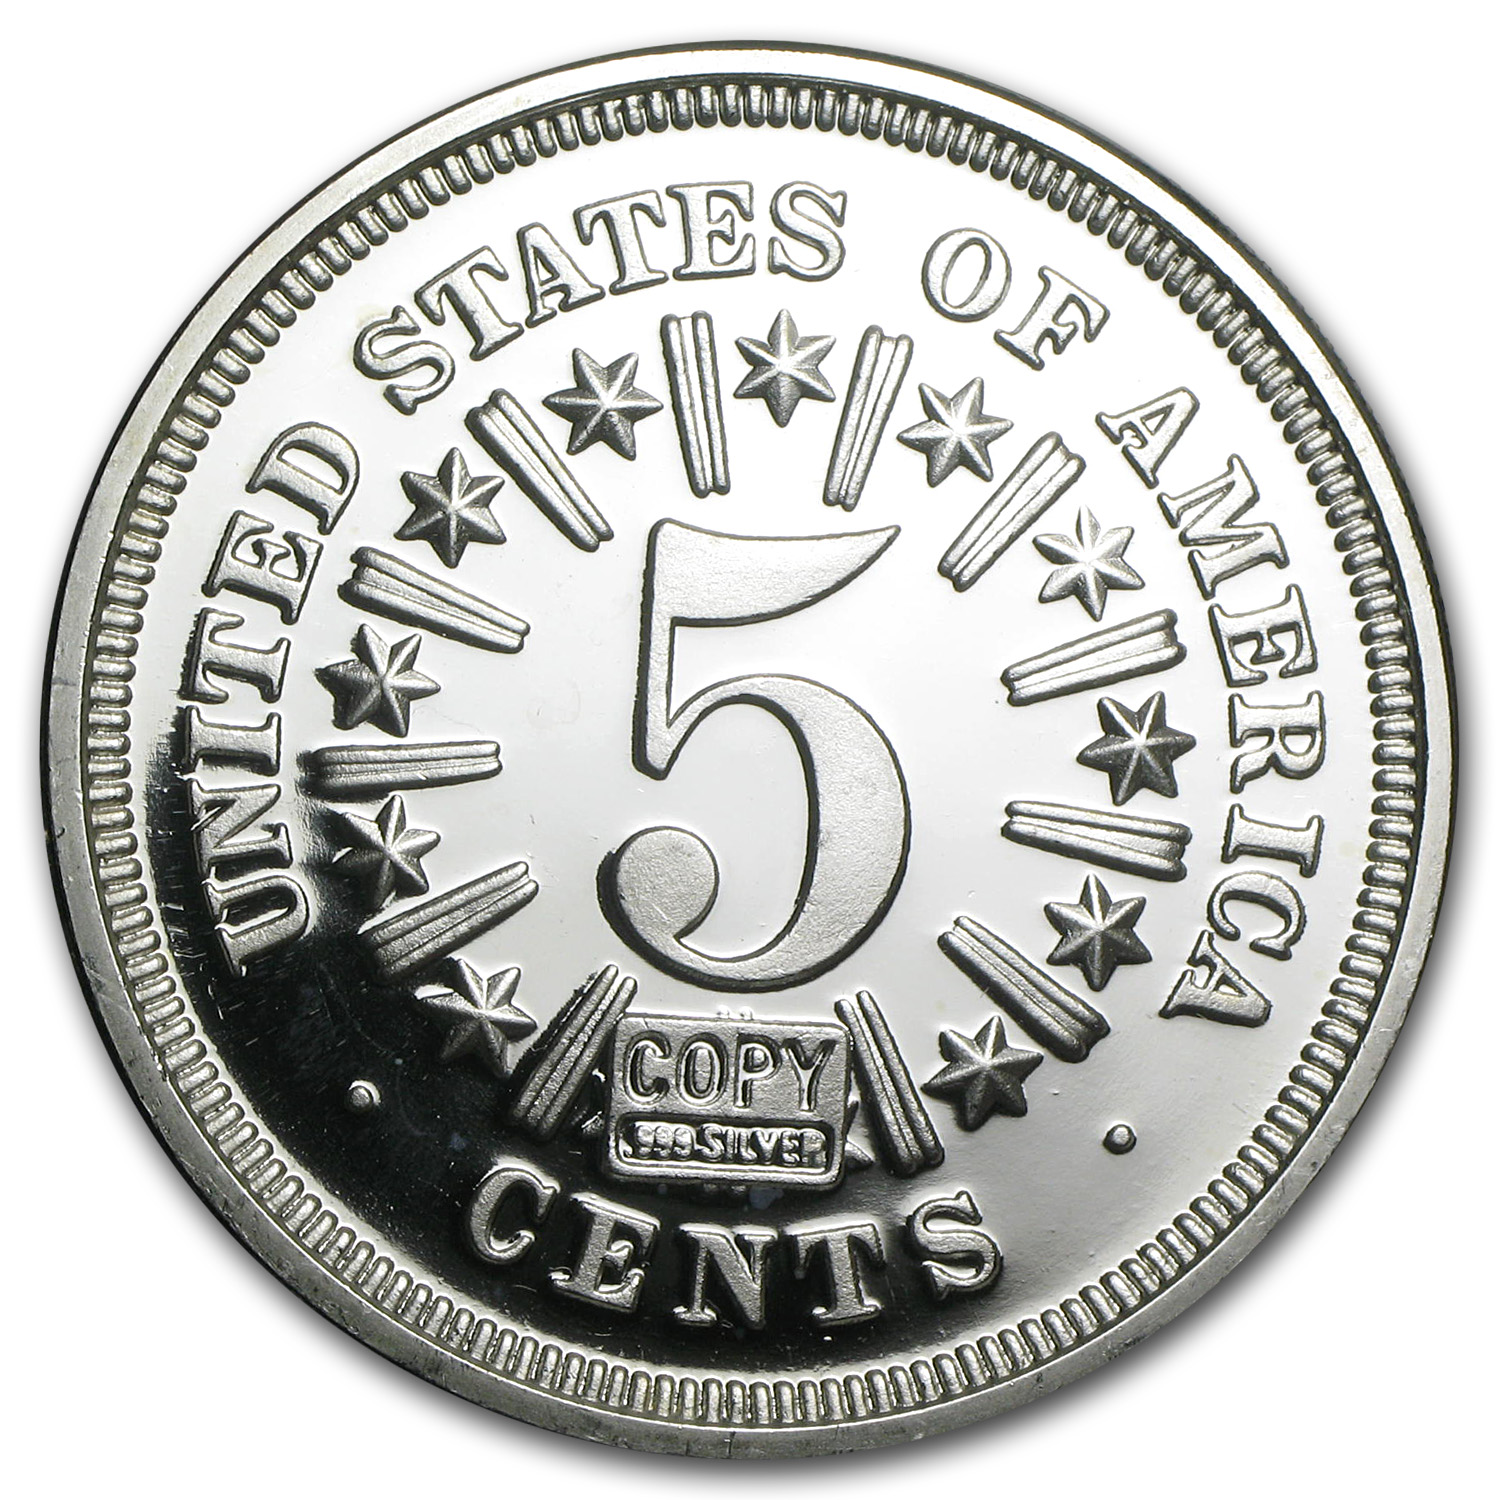 2 oz Silver Round - Shield Nickel (Replica)